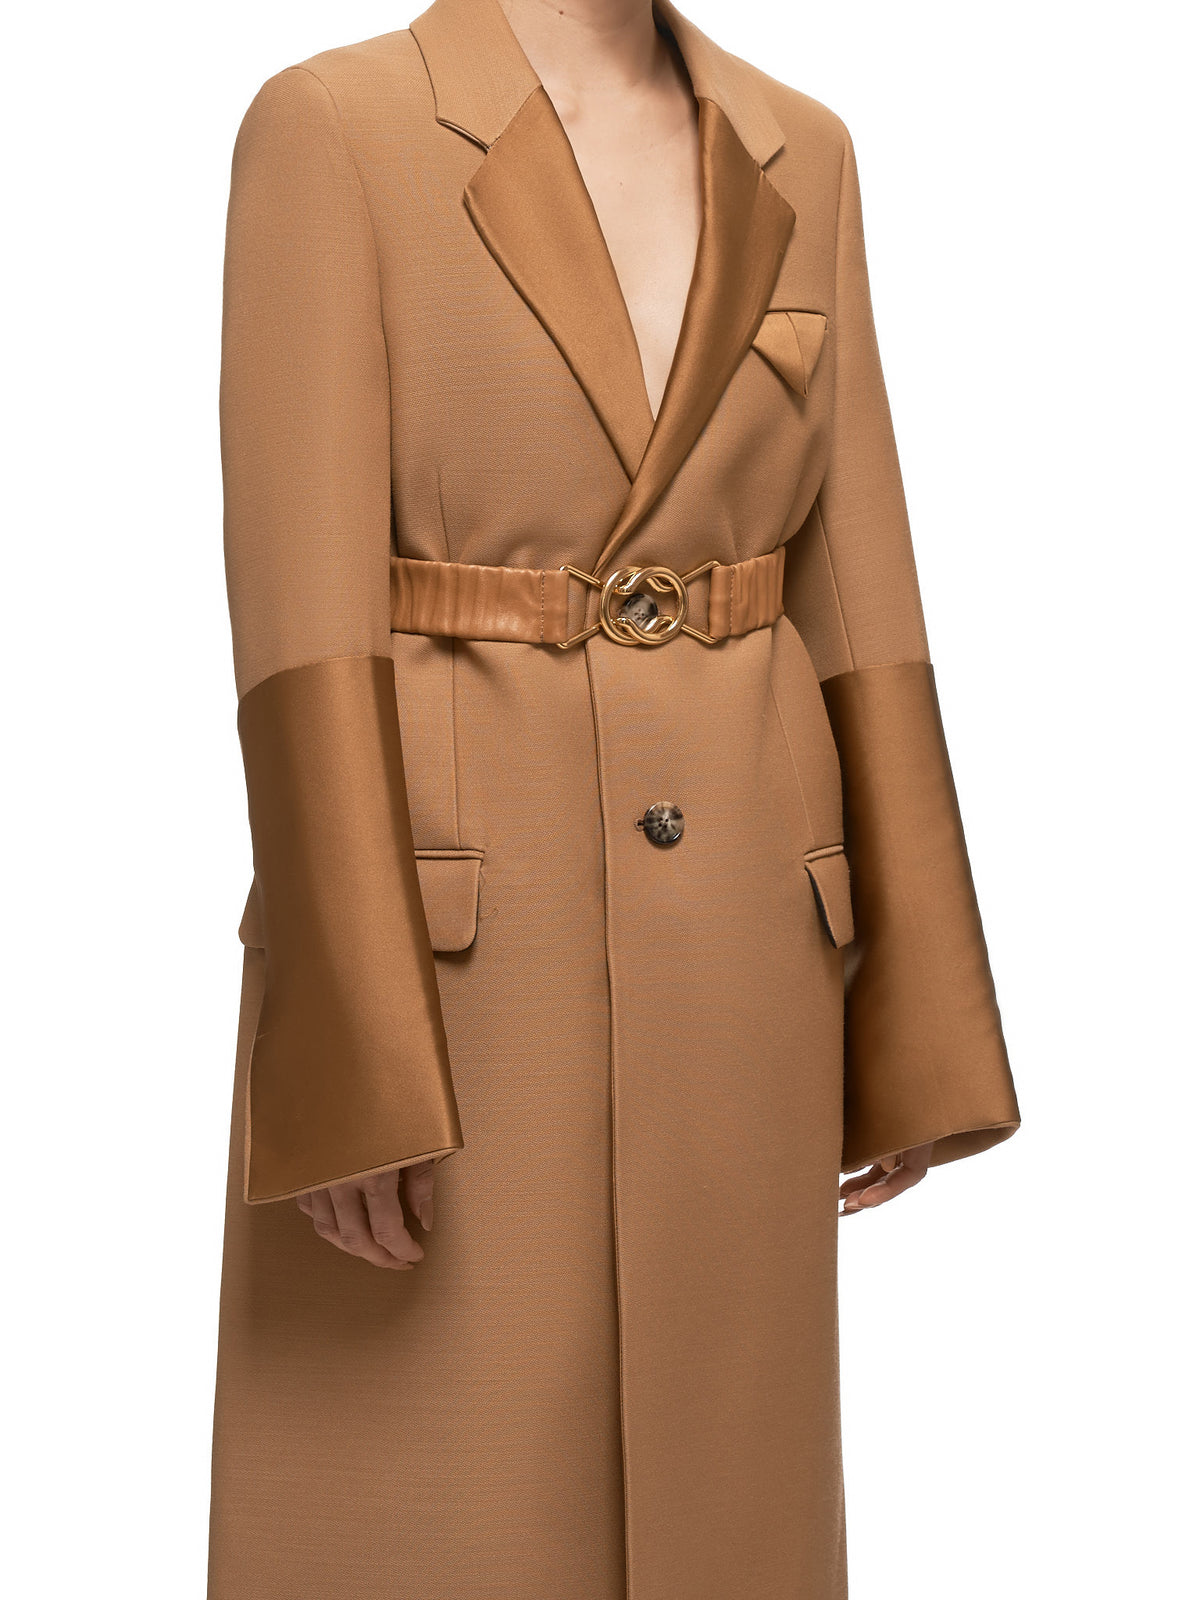 Bottega Veneta Coat - Hlorenzo Detail 2